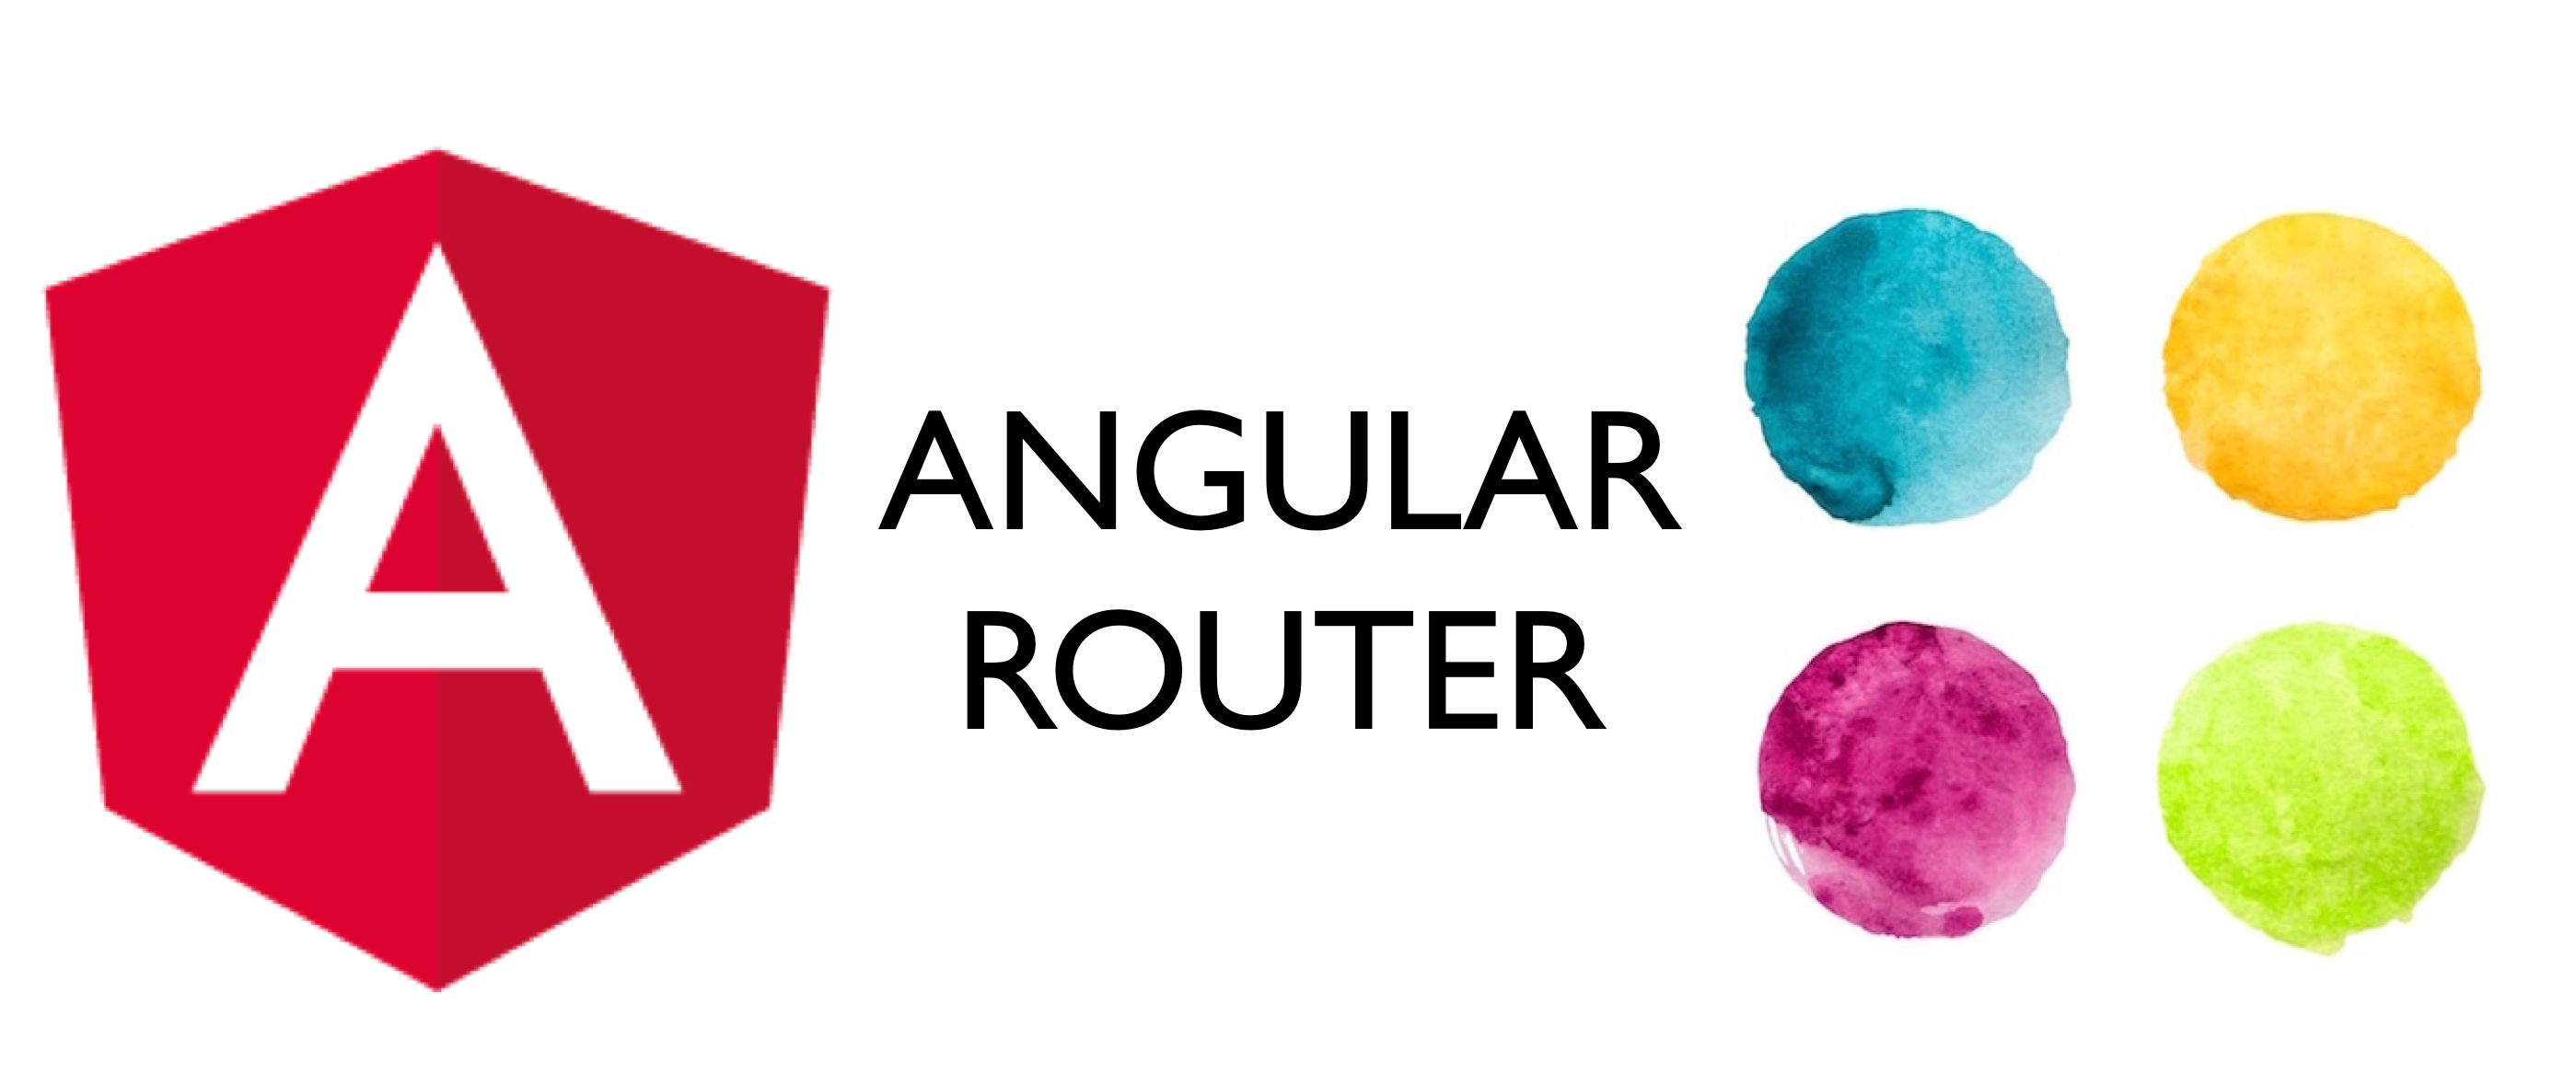 Angular Router - Angular